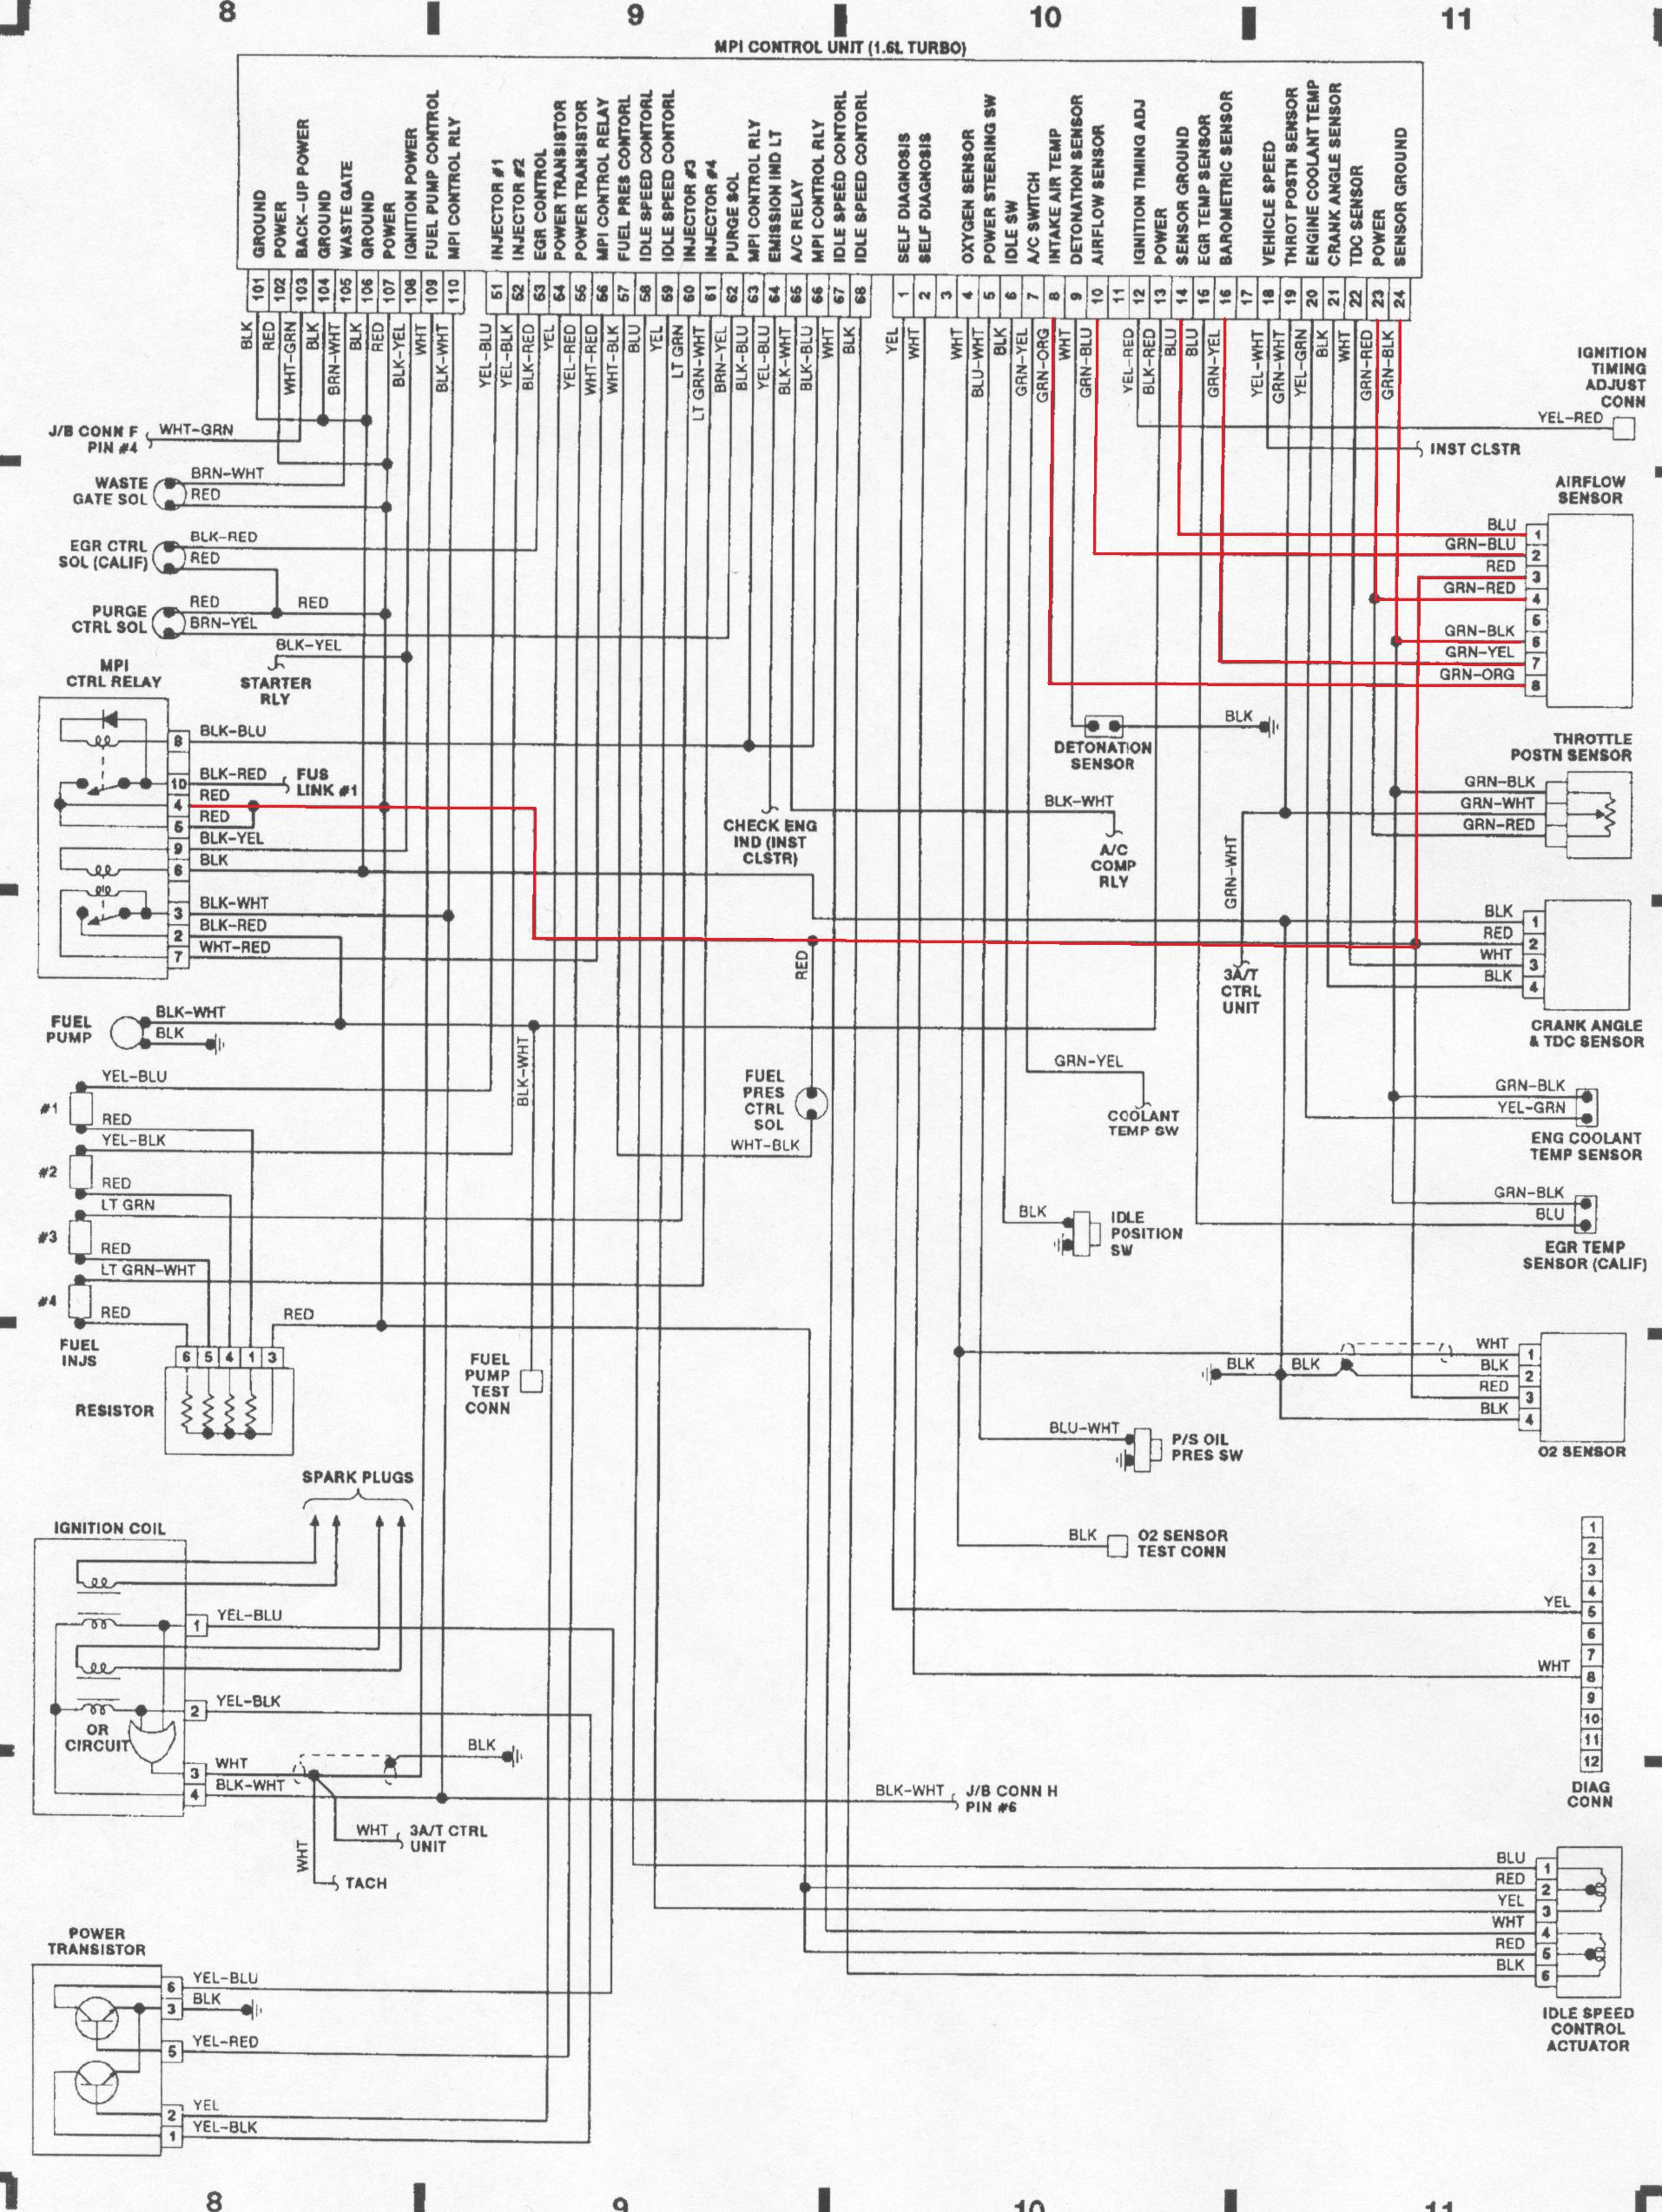 Index of mirage ecu editting maf t eprom map tuning